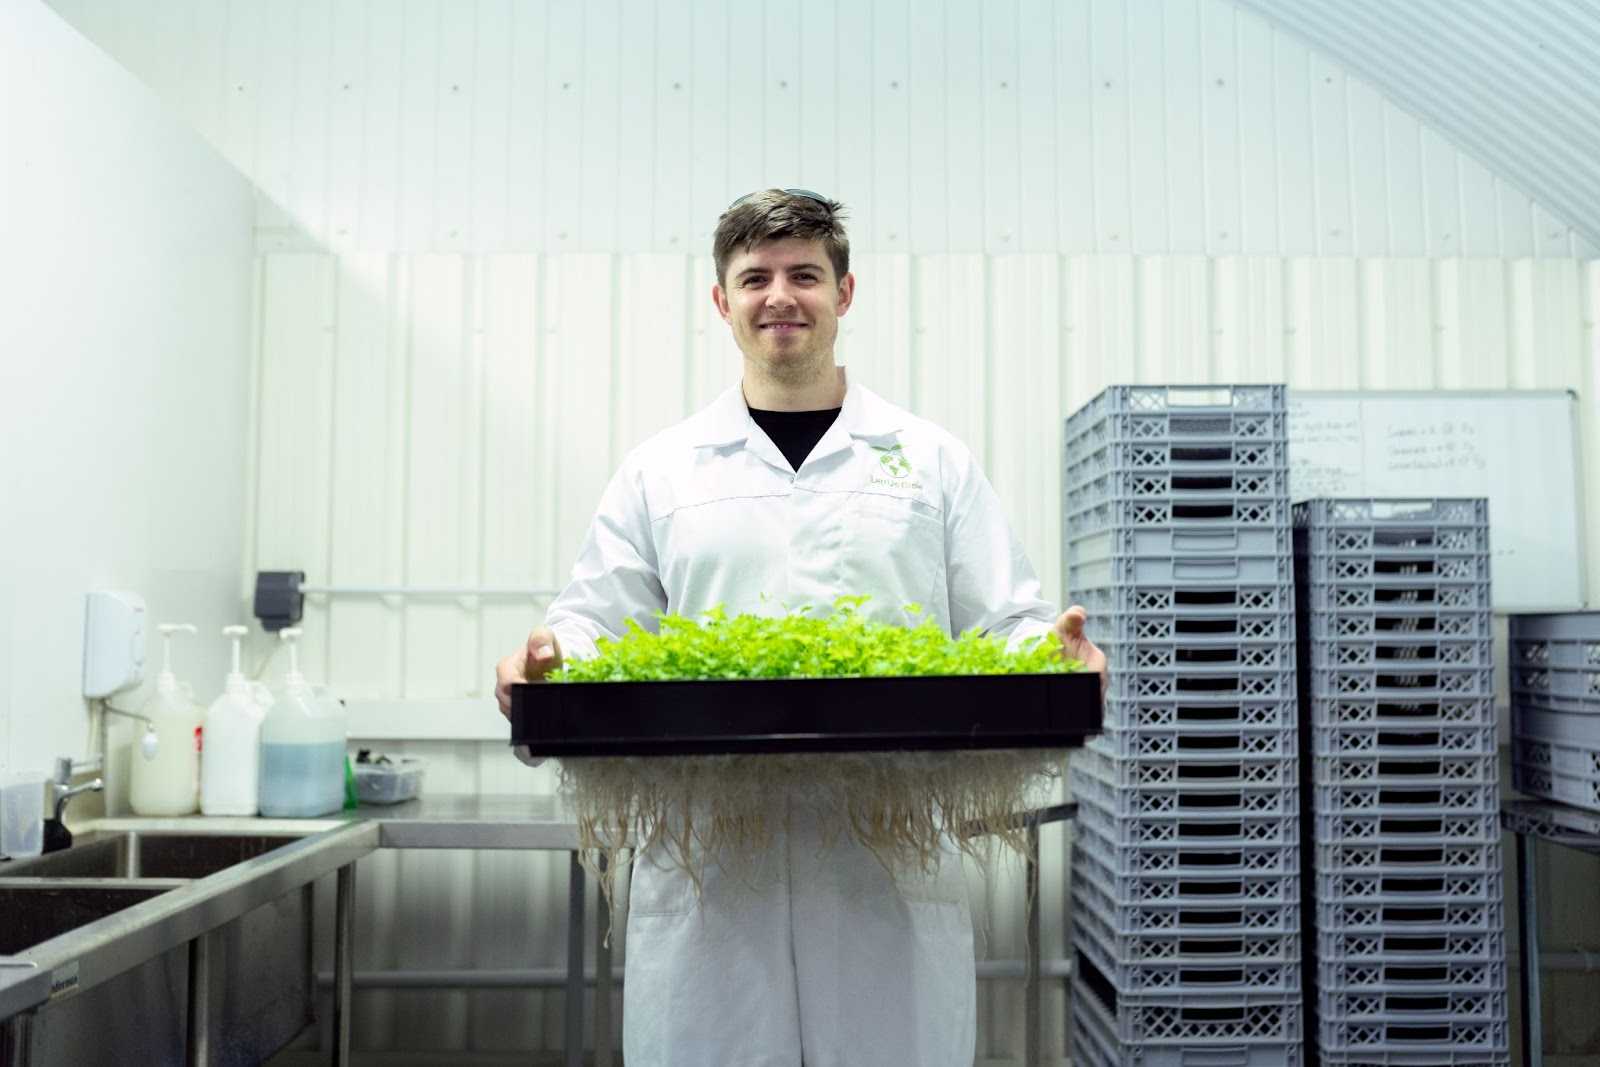 a man holding a tray of produce